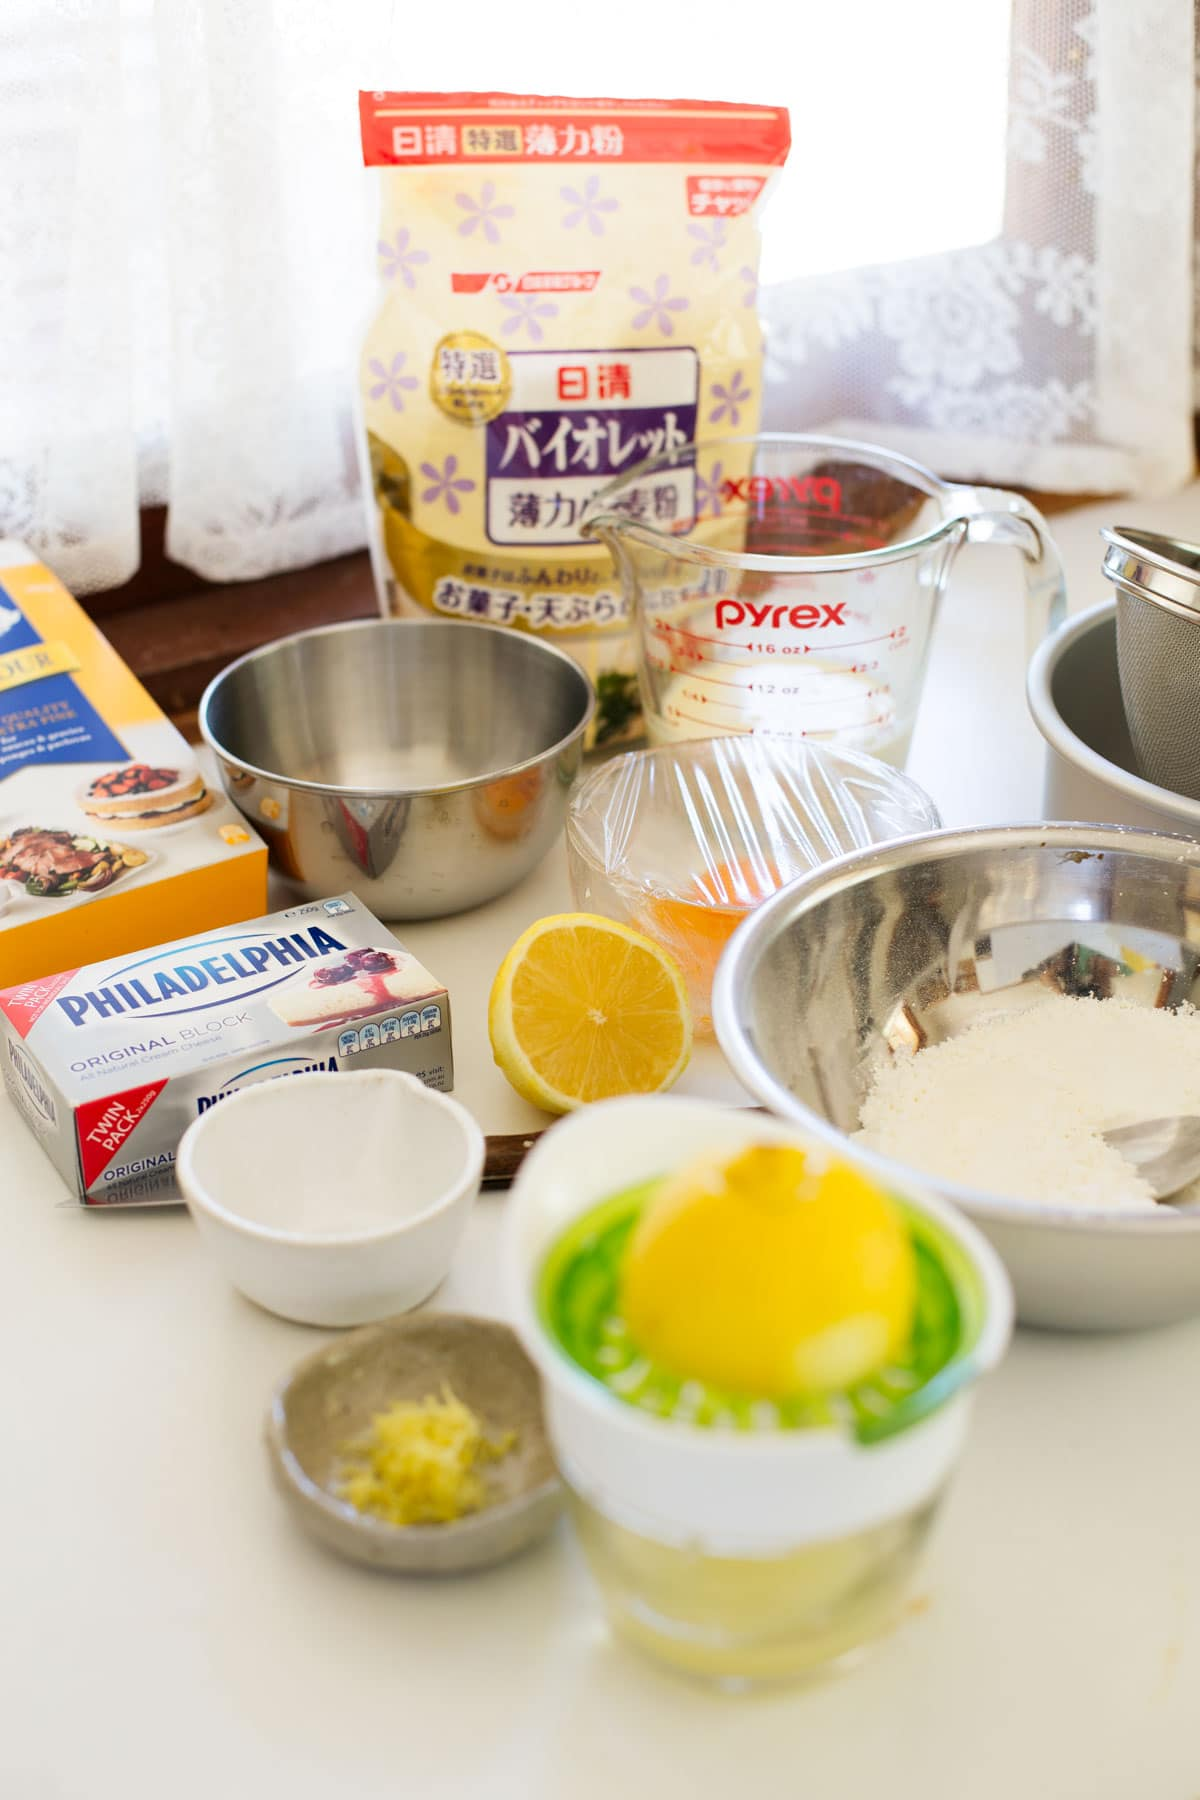 Japanese souffle cheesecake ingredients on the kitchen bench